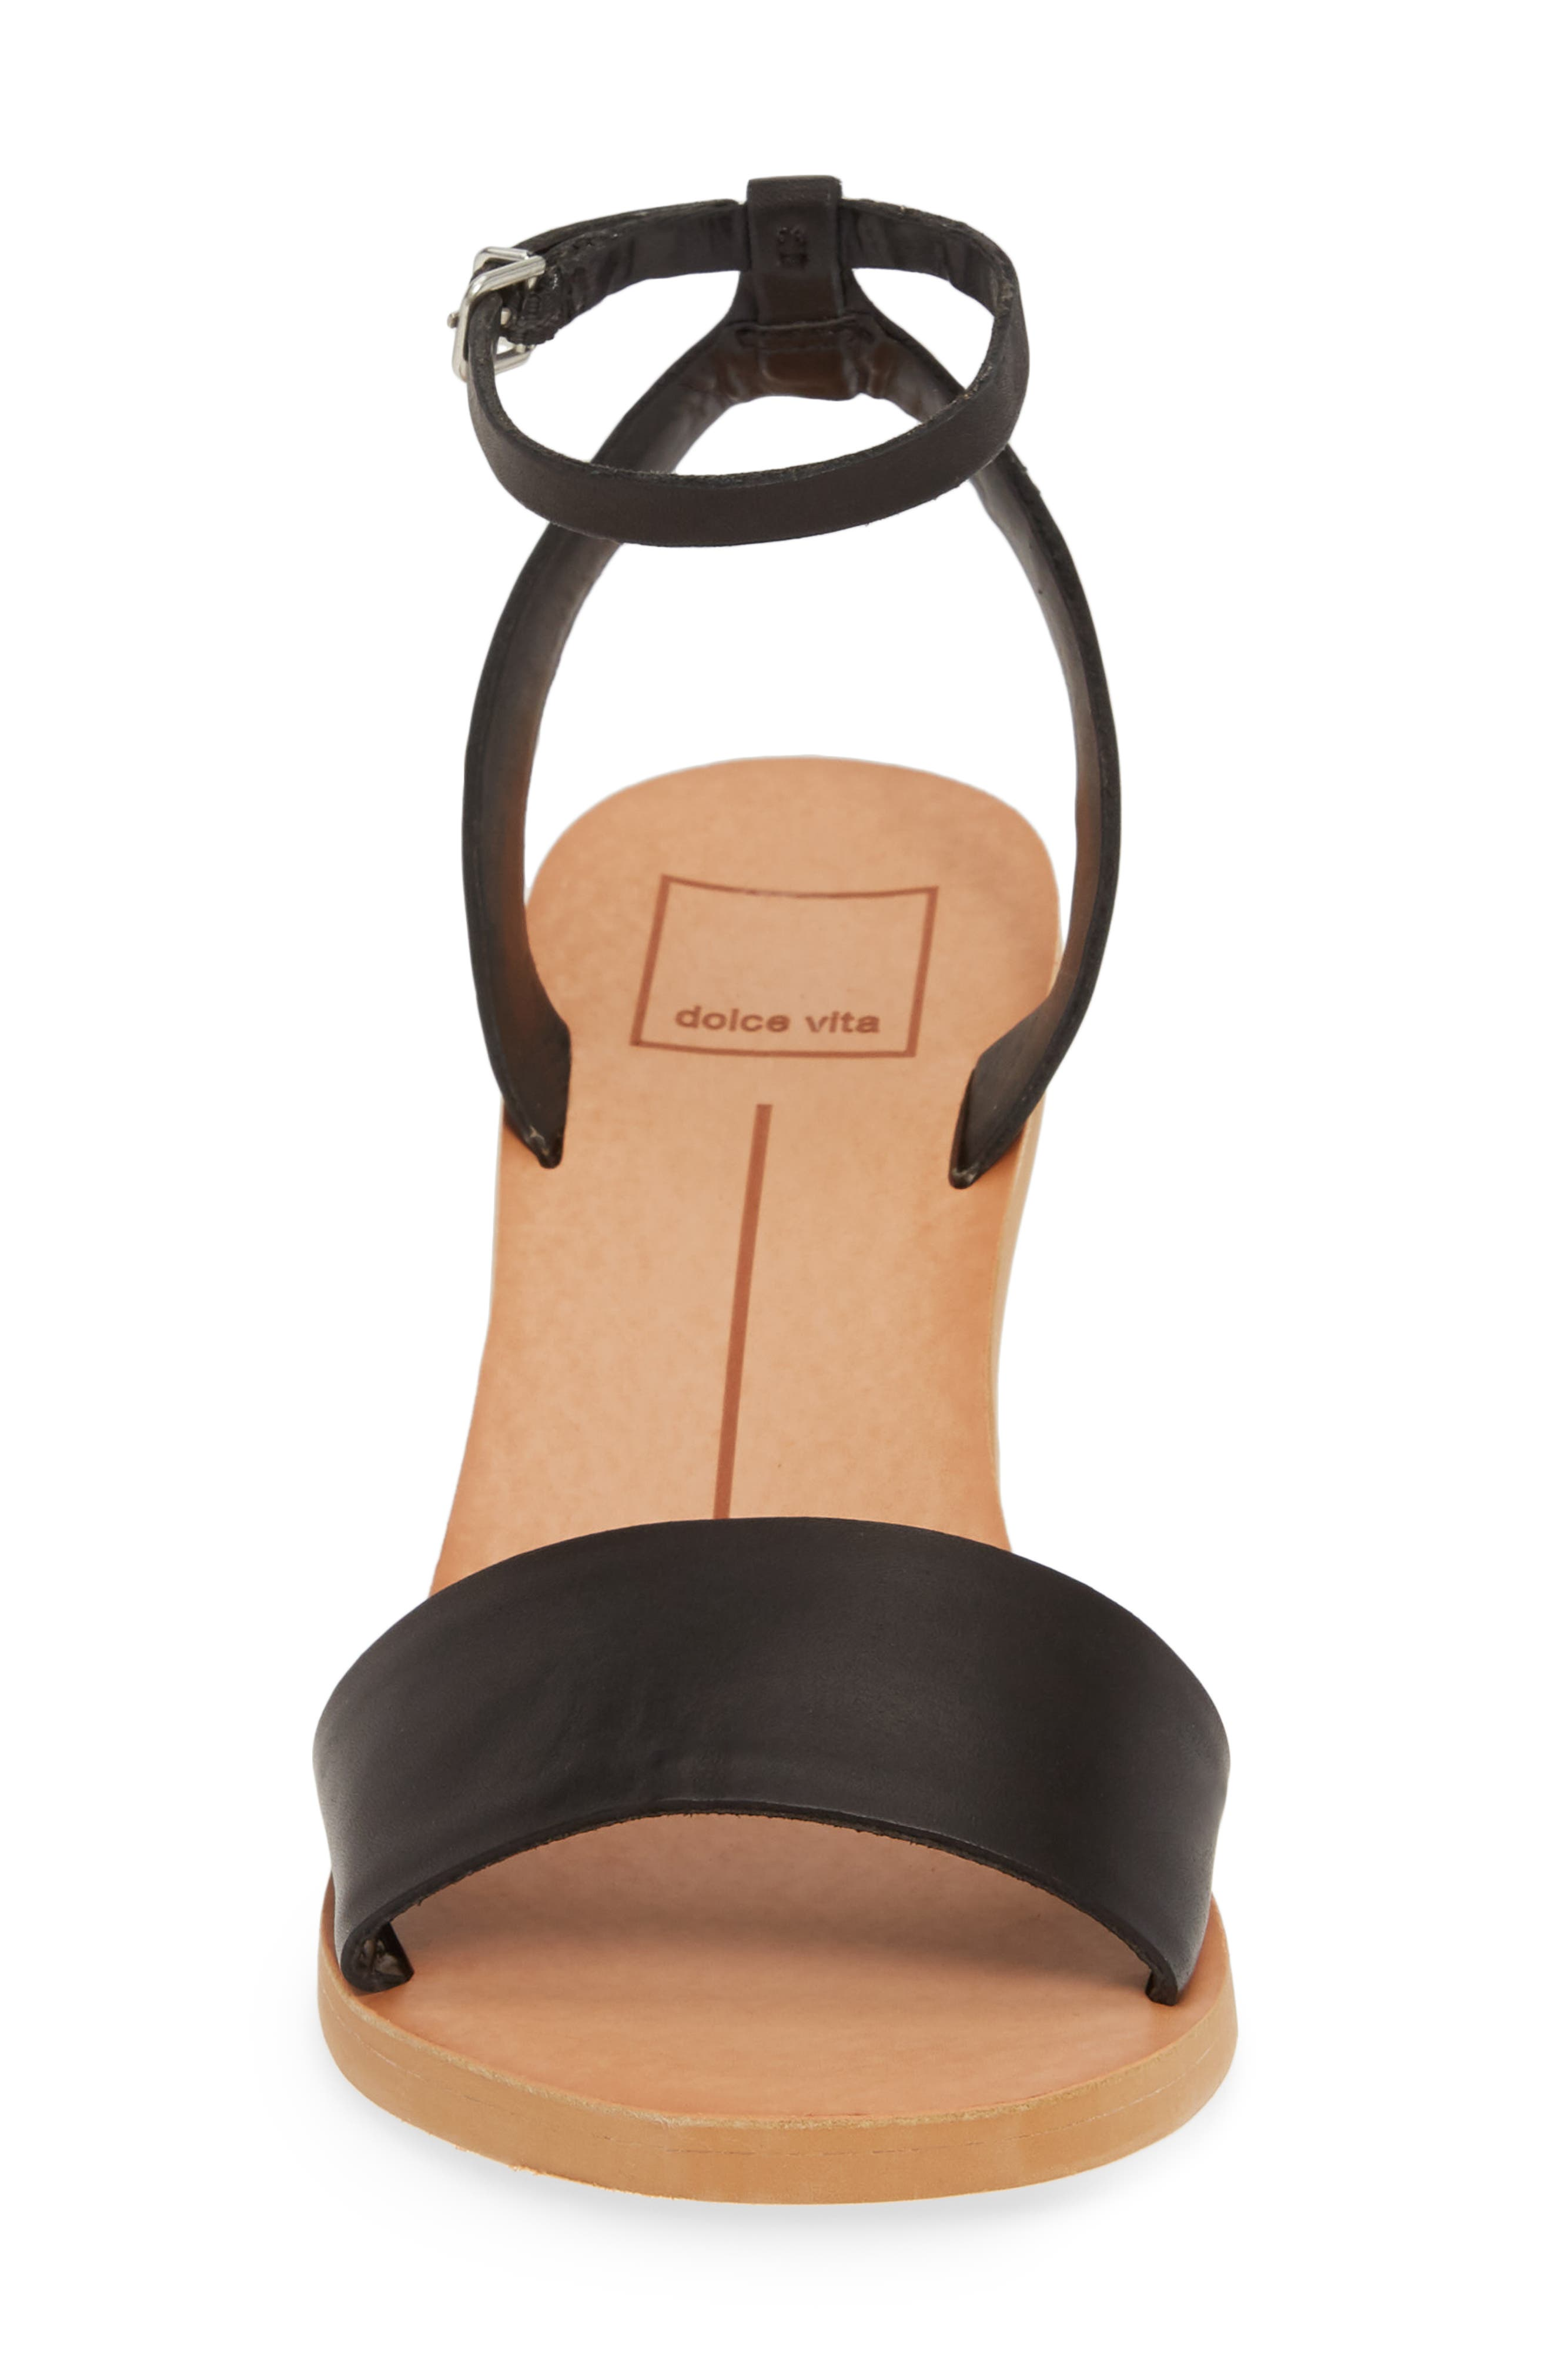 DOLCE VITA, Jali Column Heel Sandal, Alternate thumbnail 4, color, BLACK LEATHER